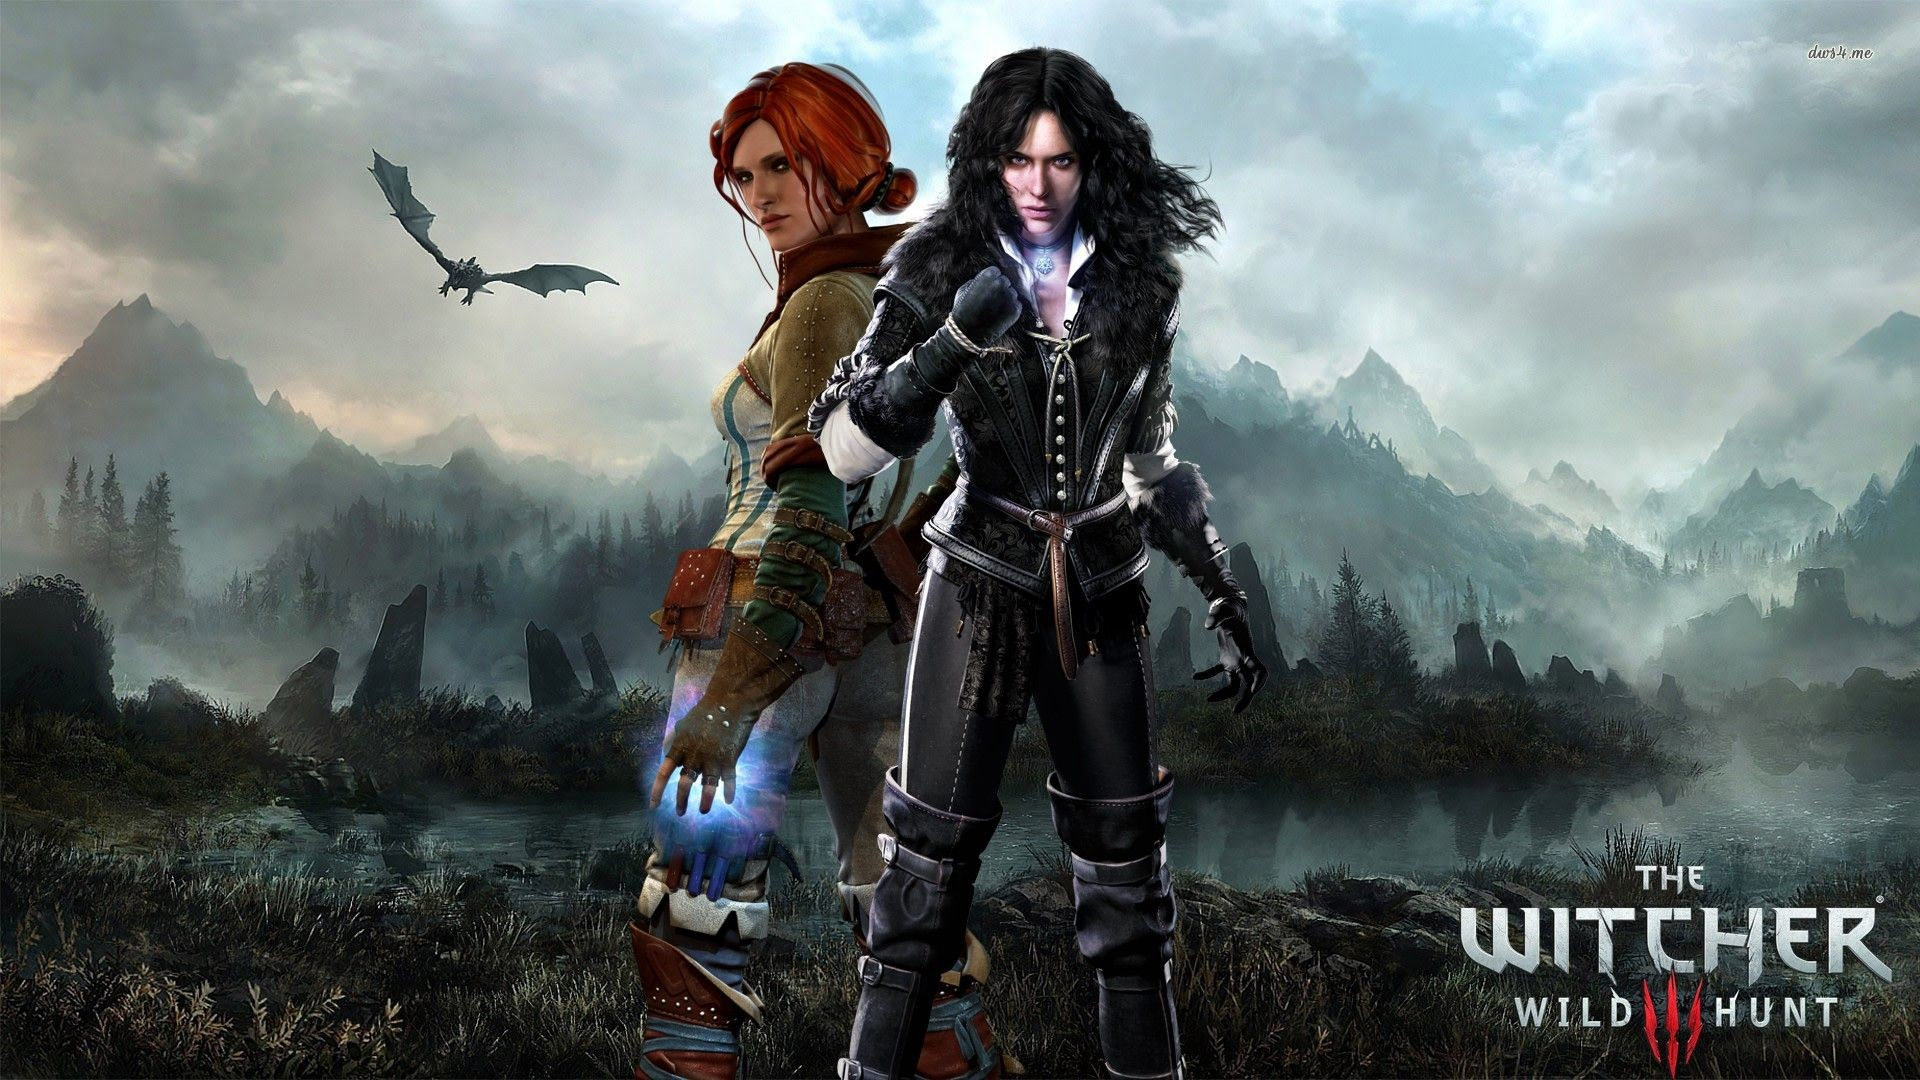 Res: 1920x1080, Triss Merigold HD Wallpapers Free Desktop Images and Photos   HD Wallpapers    Pinterest   Triss merigold, Wallpaper and Witcher triss